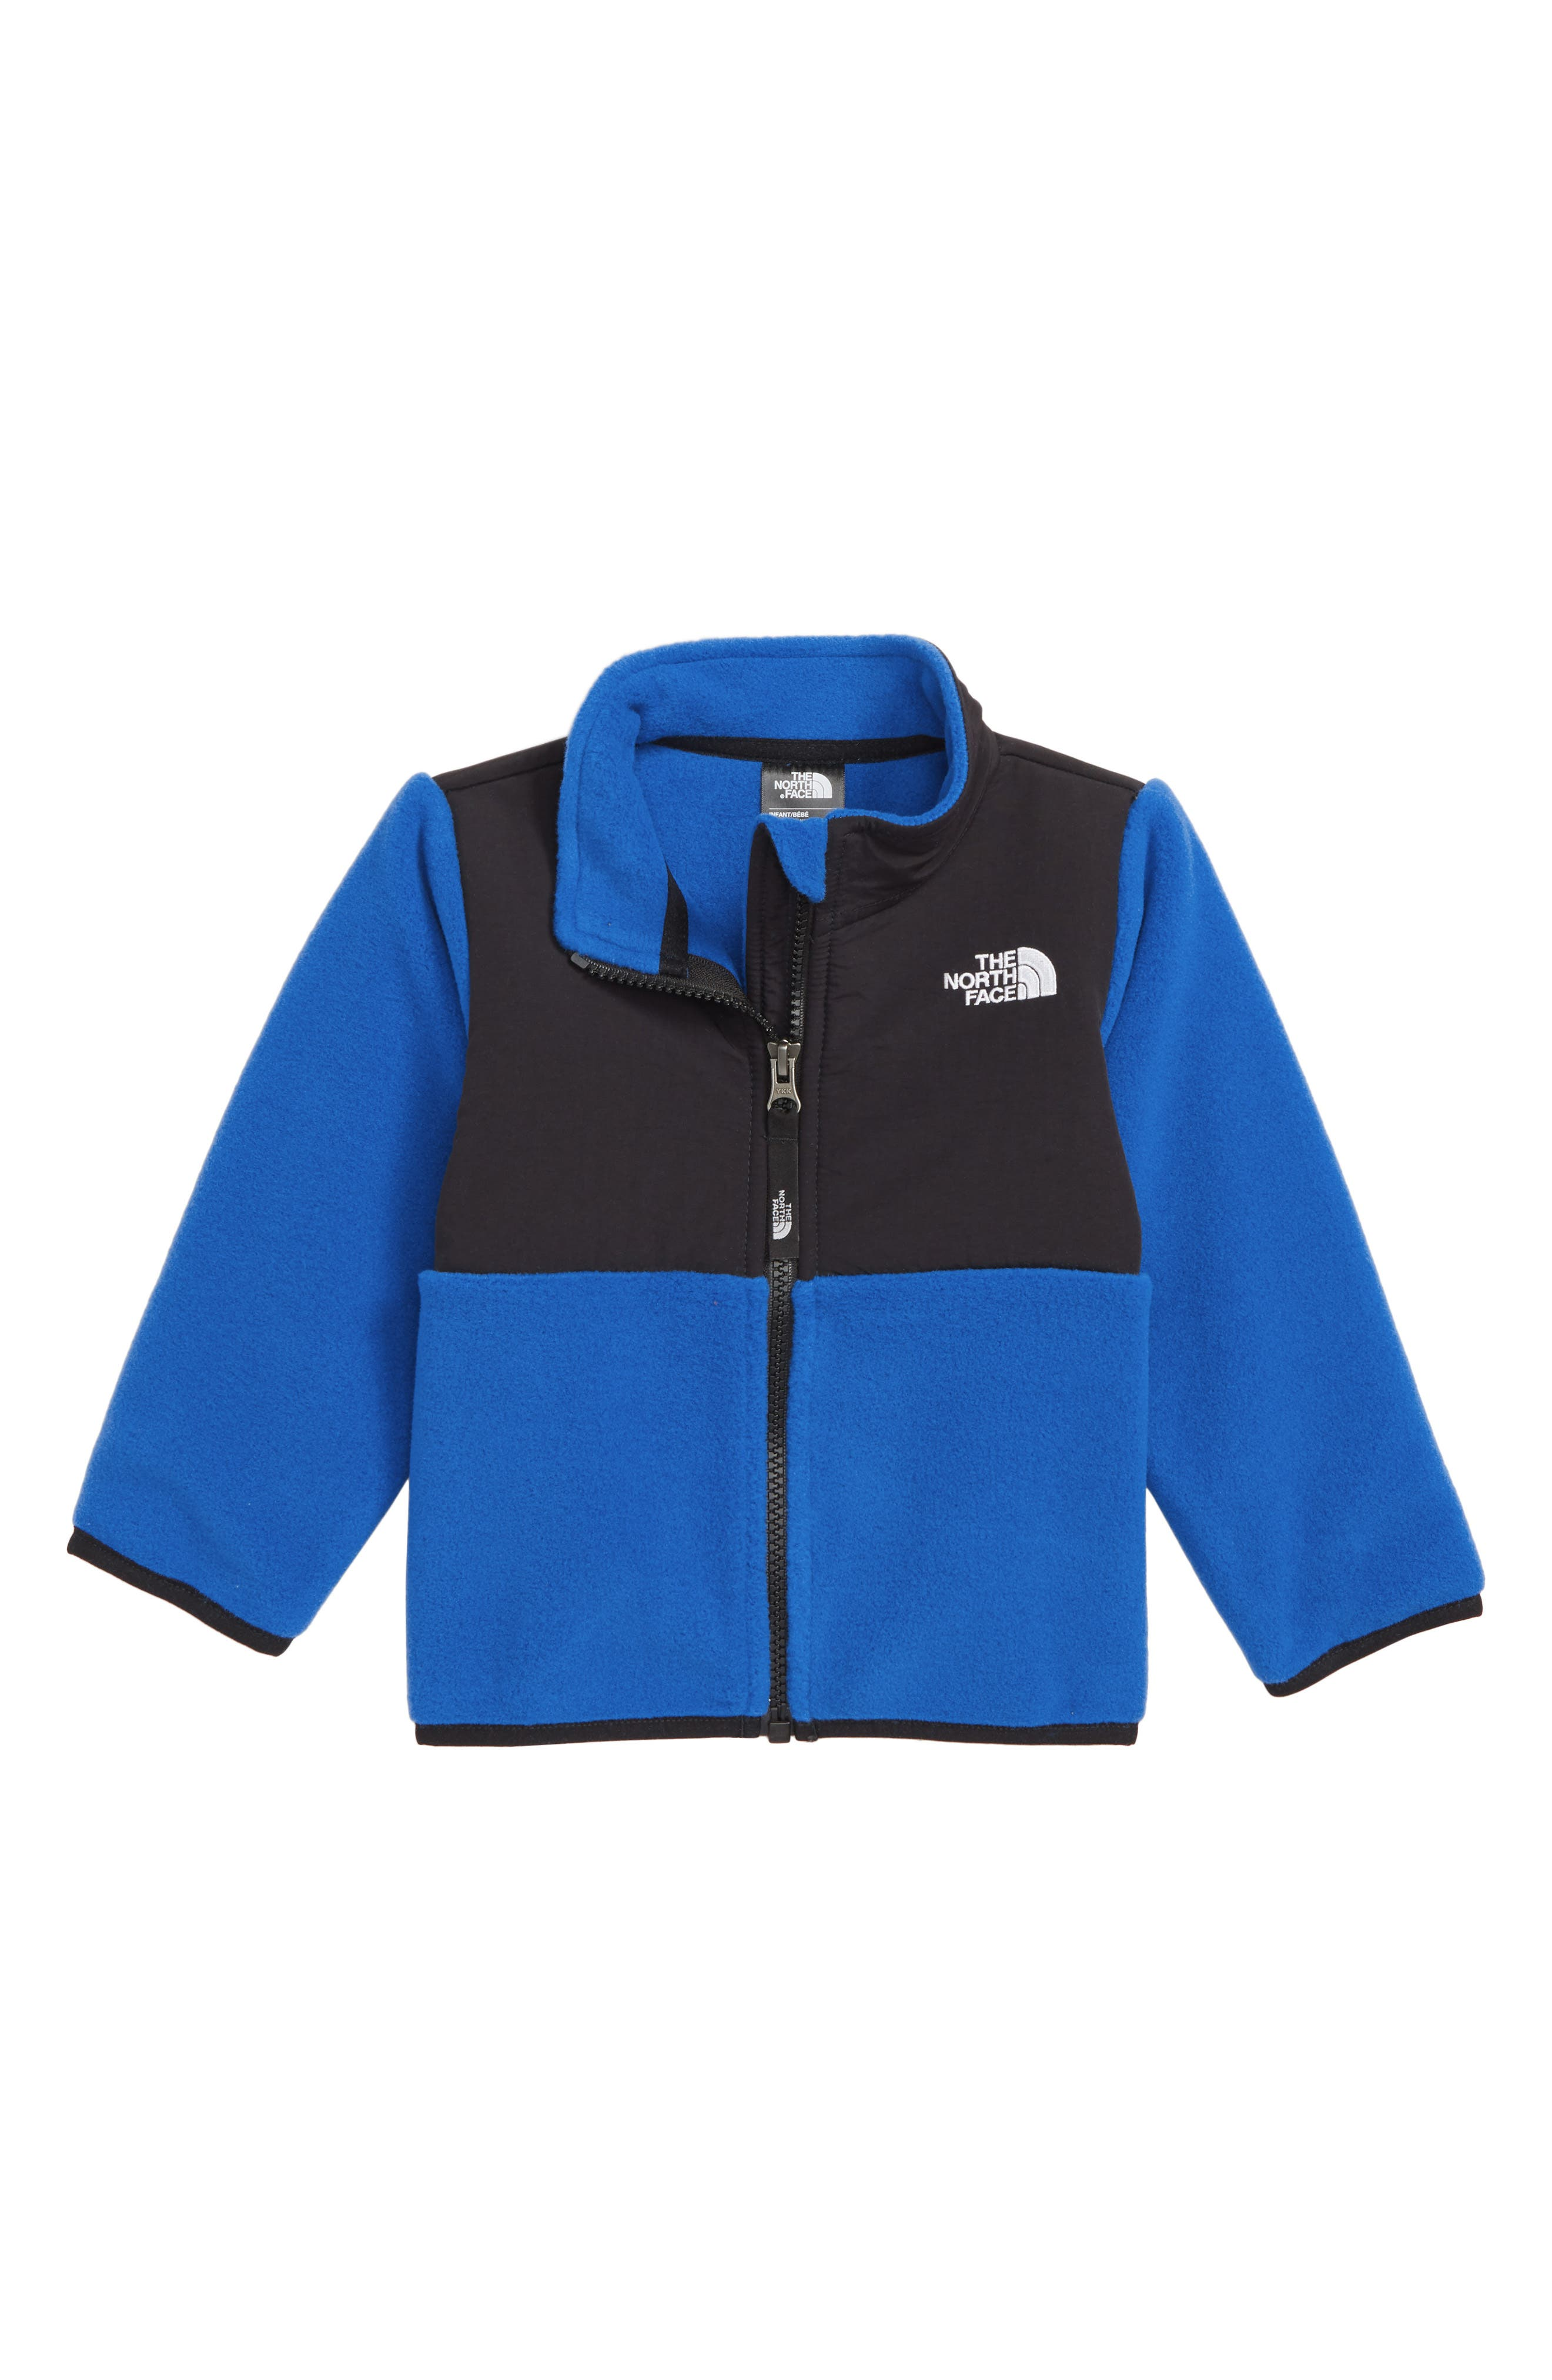 THE NORTH FACE, Denali Recycled Fleece Jacket, Main thumbnail 1, color, TURKISH SEA